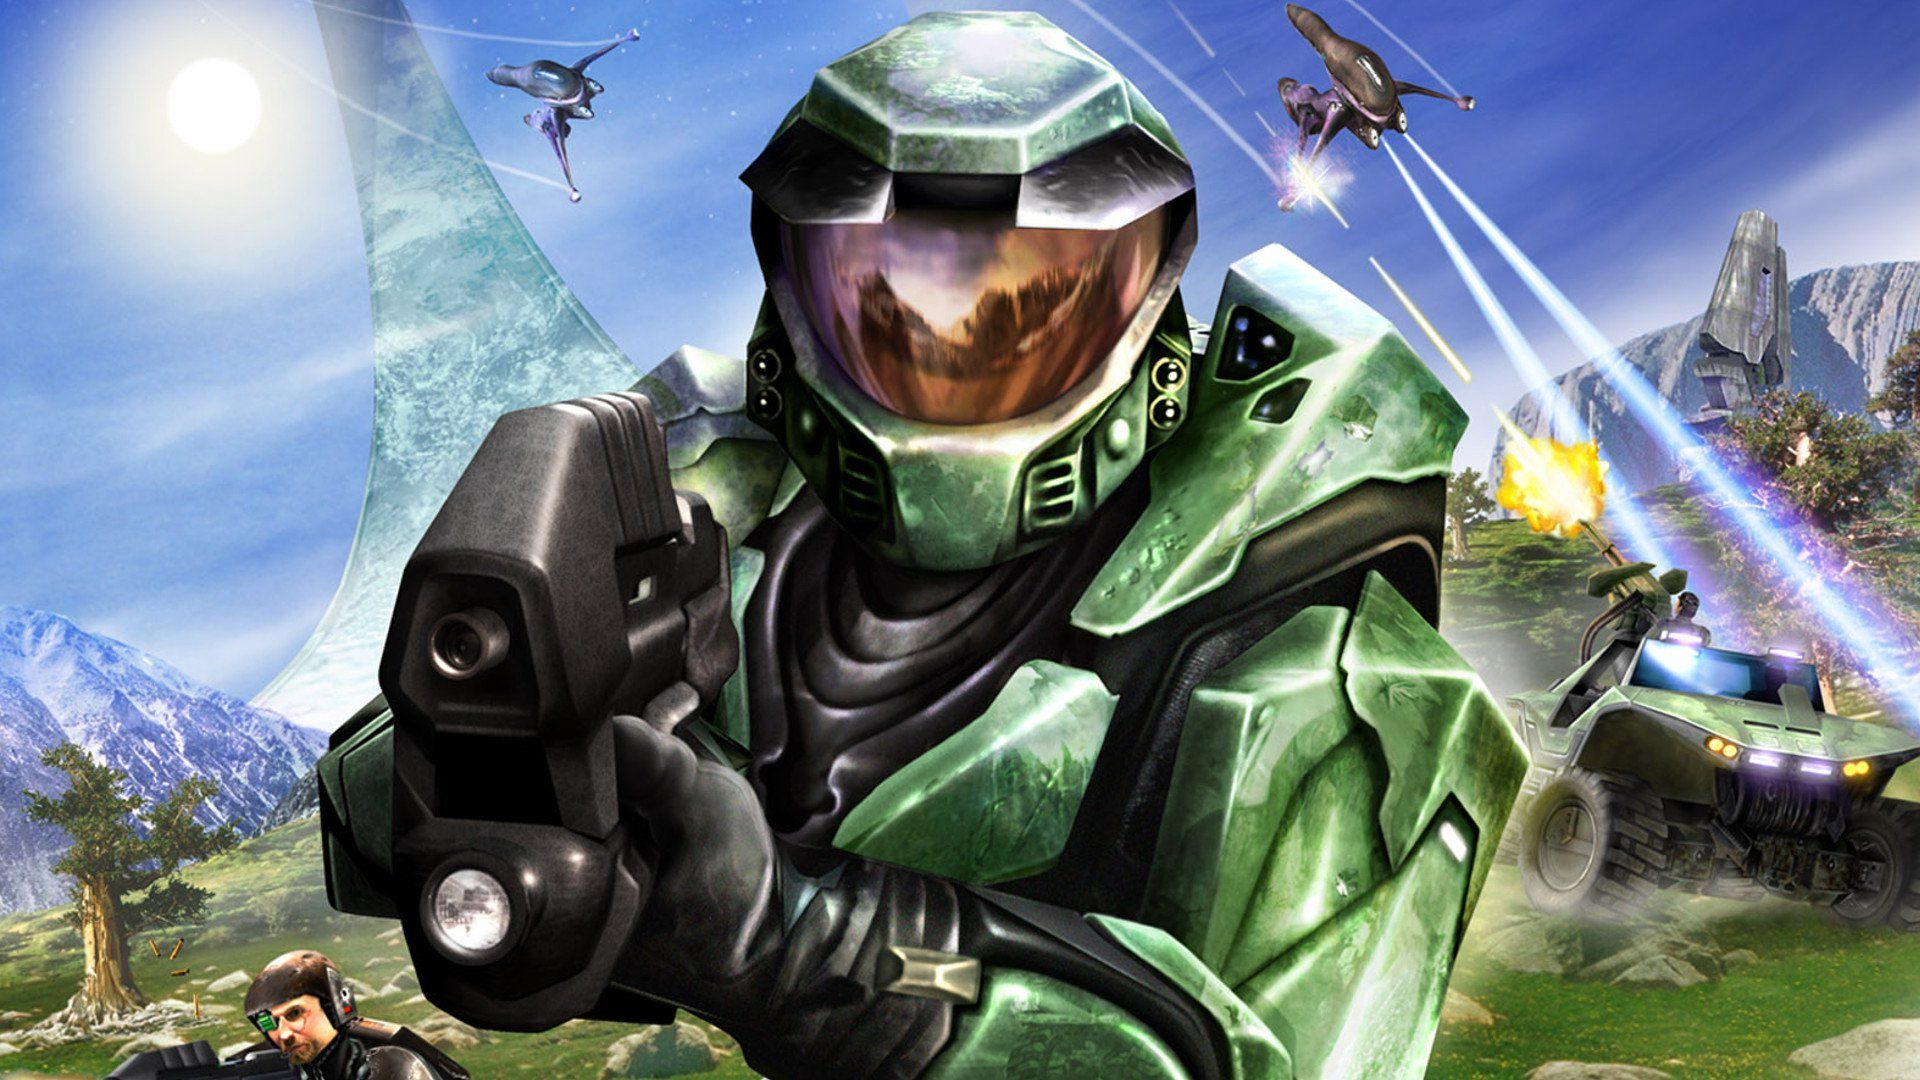 Game Changers Halo Combat Evolved Halo Combat Evolved Combat Evolved Halo Game